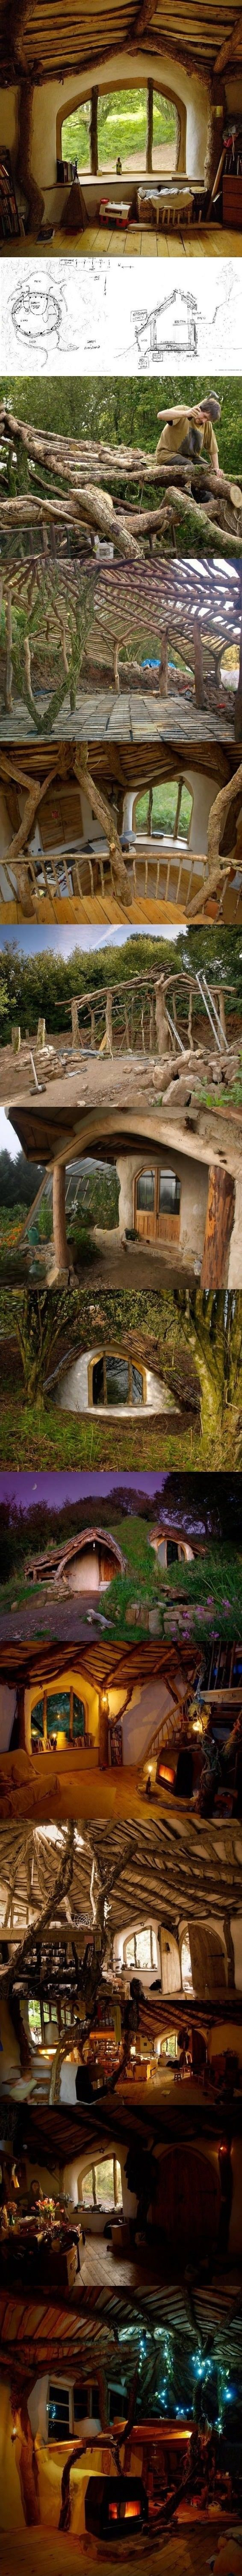 How to build a hobbit house. Amazing